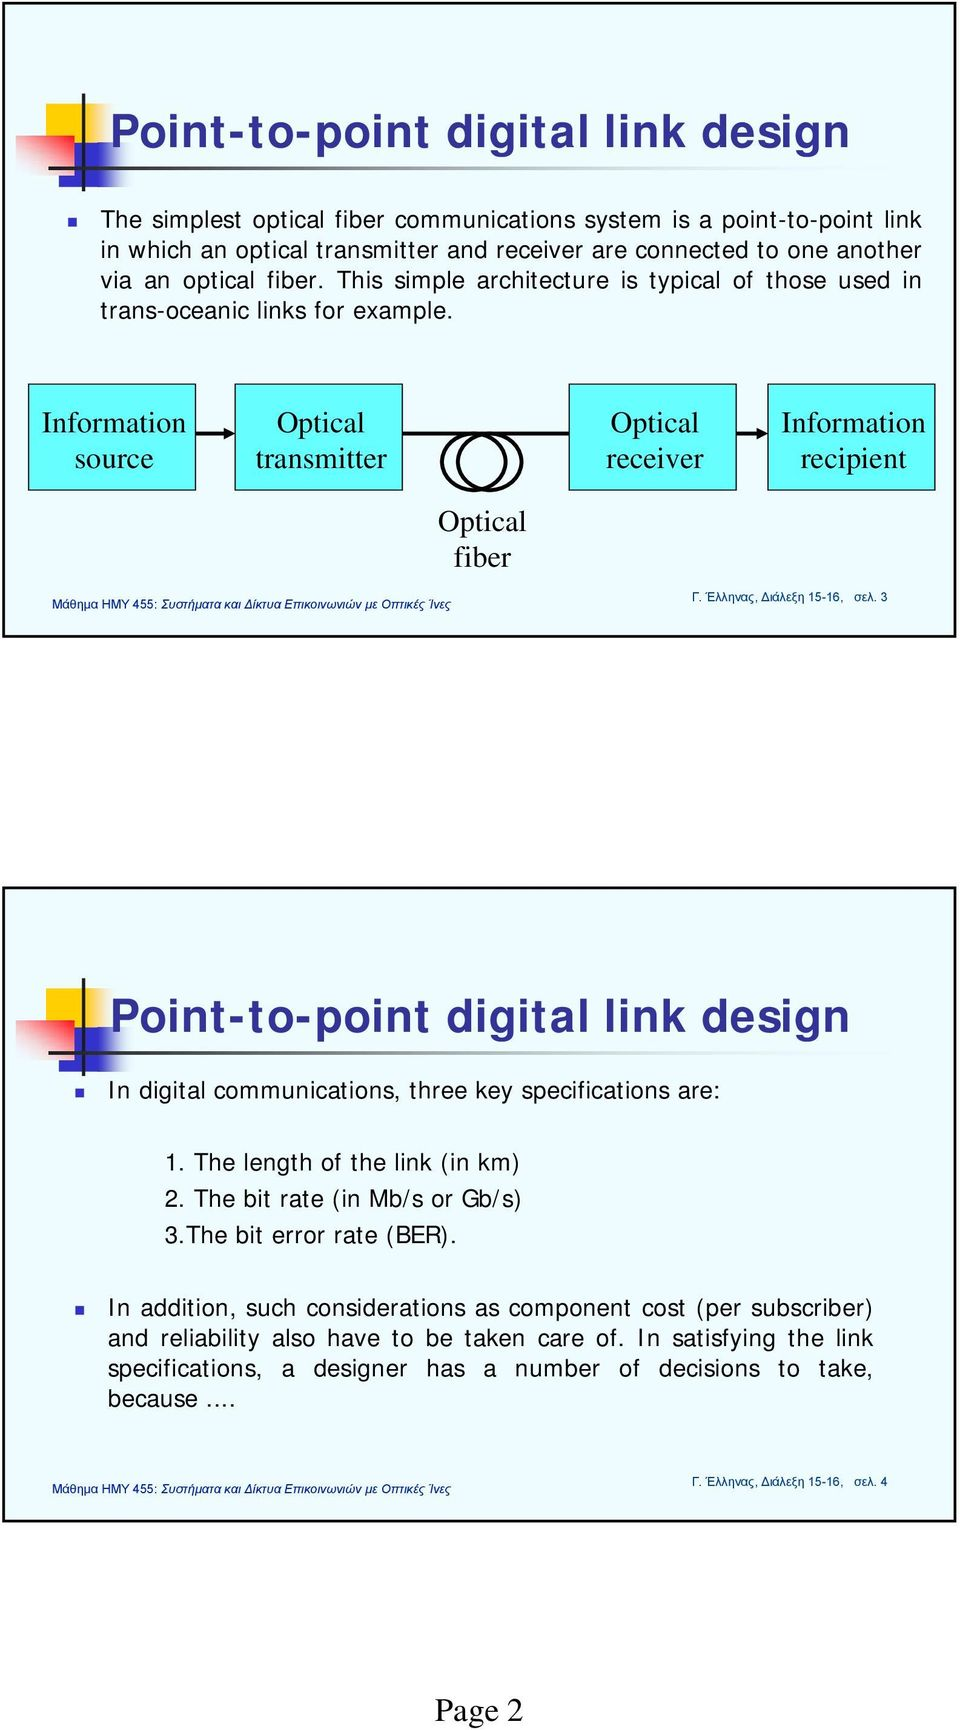 Έλληνας, Διάλεξη 15-16, σελ. 3 Point-to-point digital link design In digital communications, three key specifications are: 1. The length of the link (in km) 2. The bit rate (in Mb/s or Gb/s) 3.